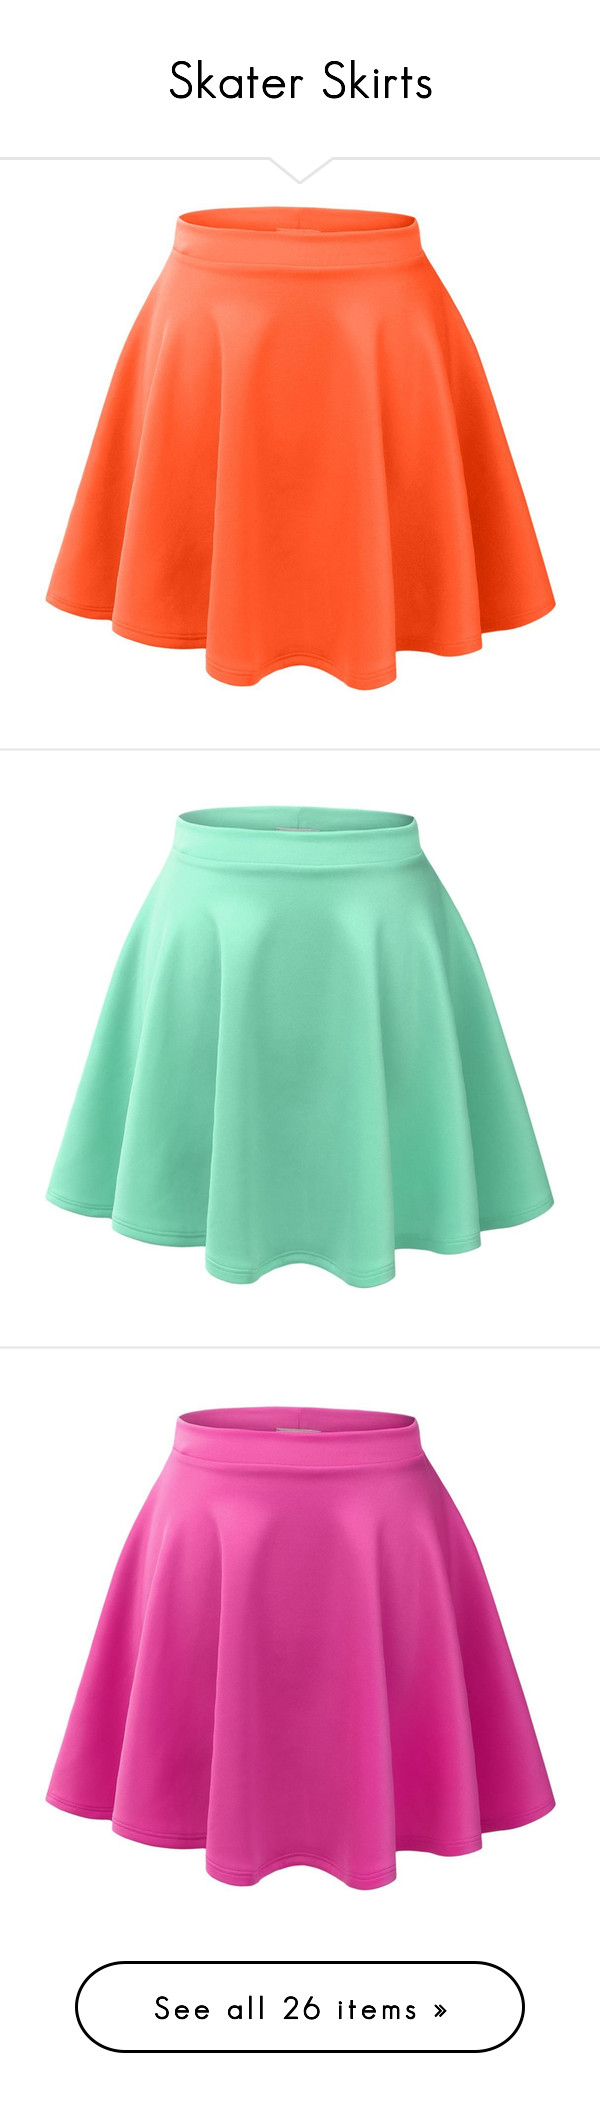 """""""Skater Skirts"""" by mariej-s on Polyvore featuring skirts, mini skirts, flared skirt, skater skirt, stretch mini skirt, stretchy skirts, flared hem skirt, bottoms, green circle skirt and green skater skirt"""